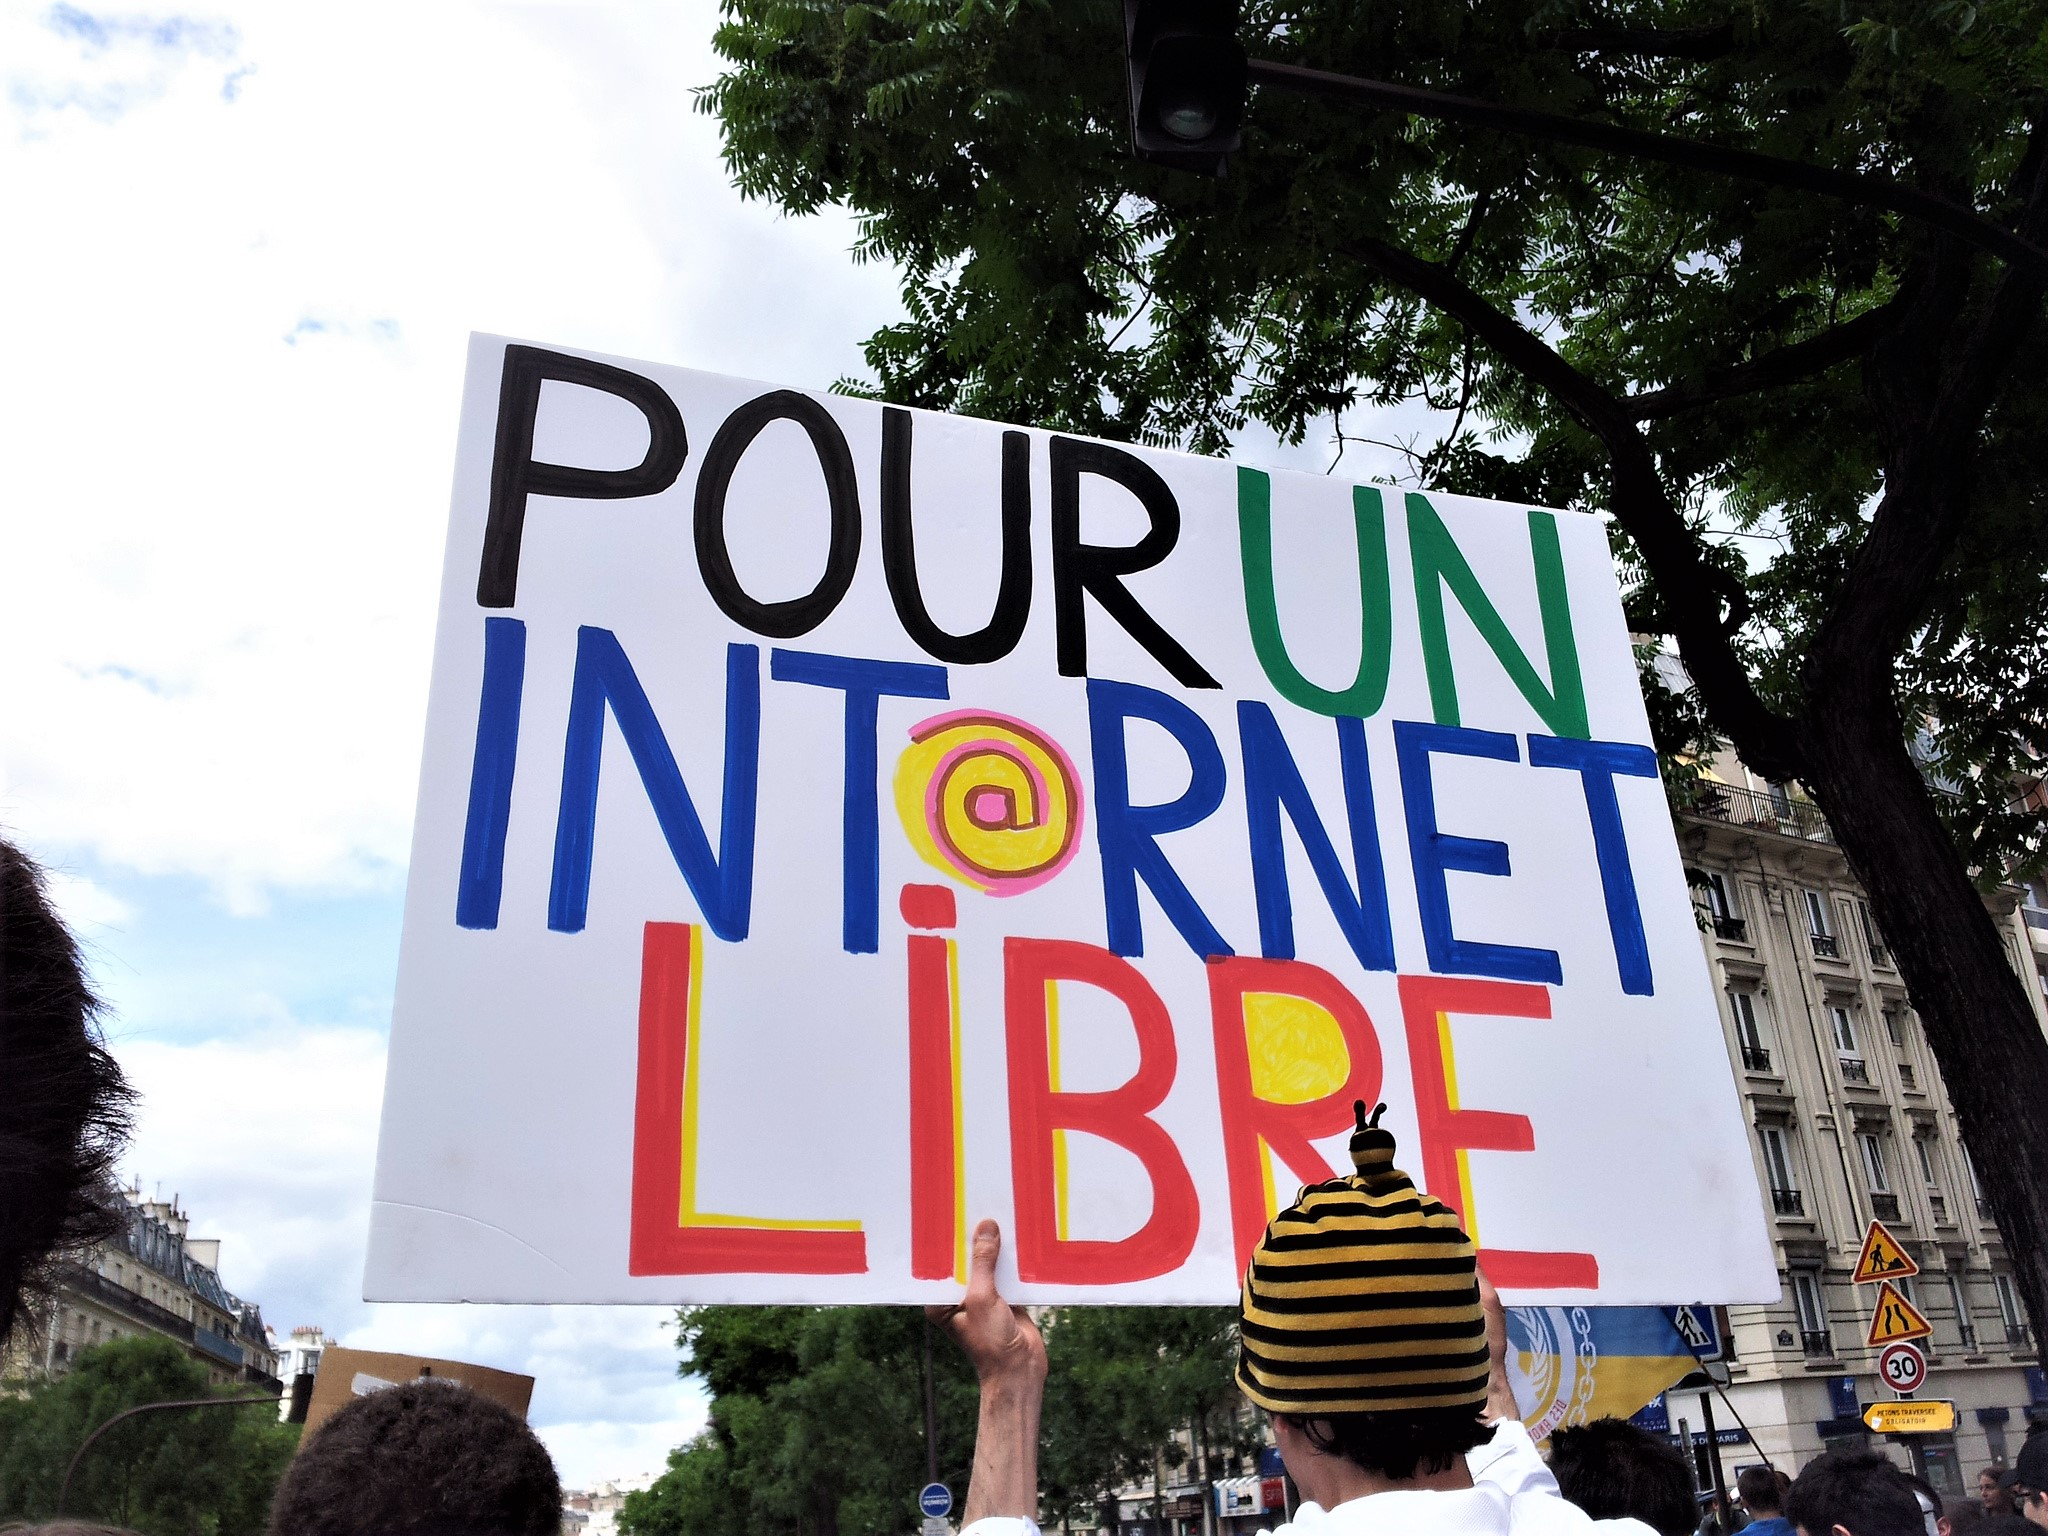 Pour_un_Internet_Libre_g4ll4is.jpg